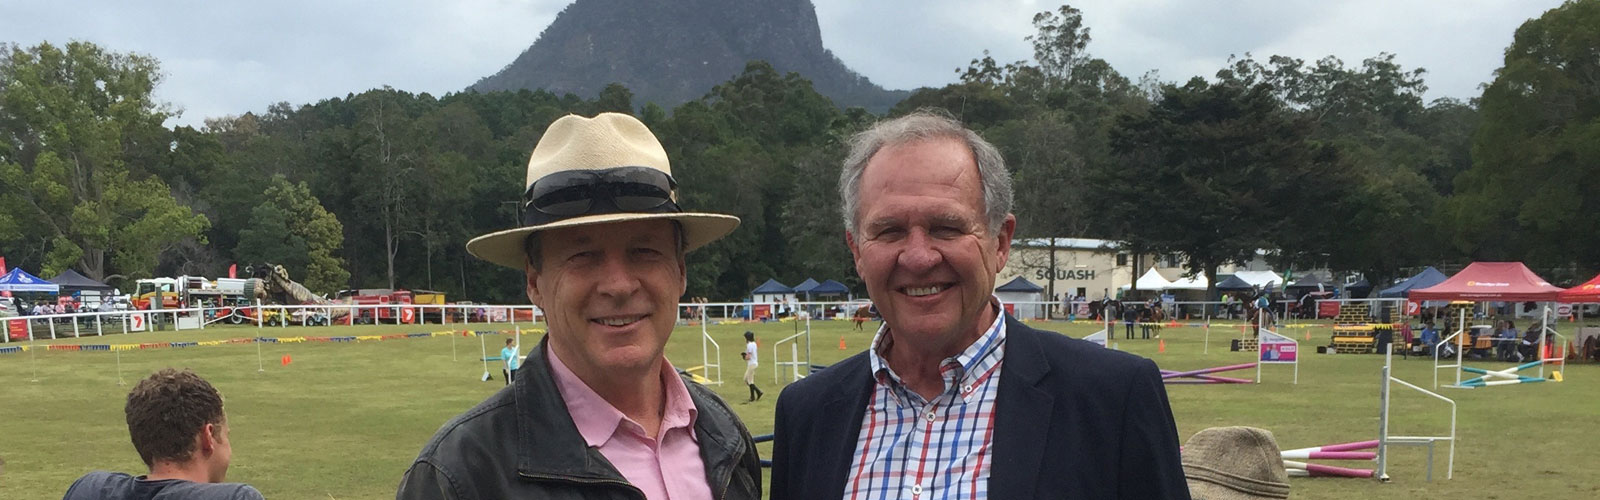 NBR Foundation Chairman welcomes Noosa Show